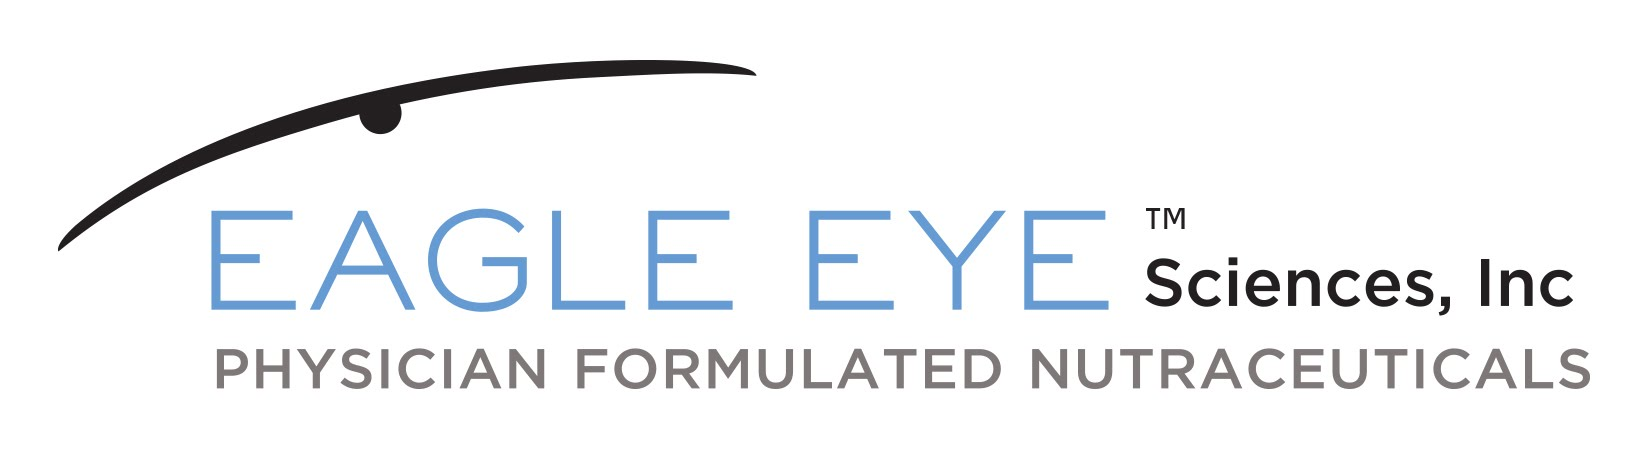 http://www.eagleeyesciences.com/